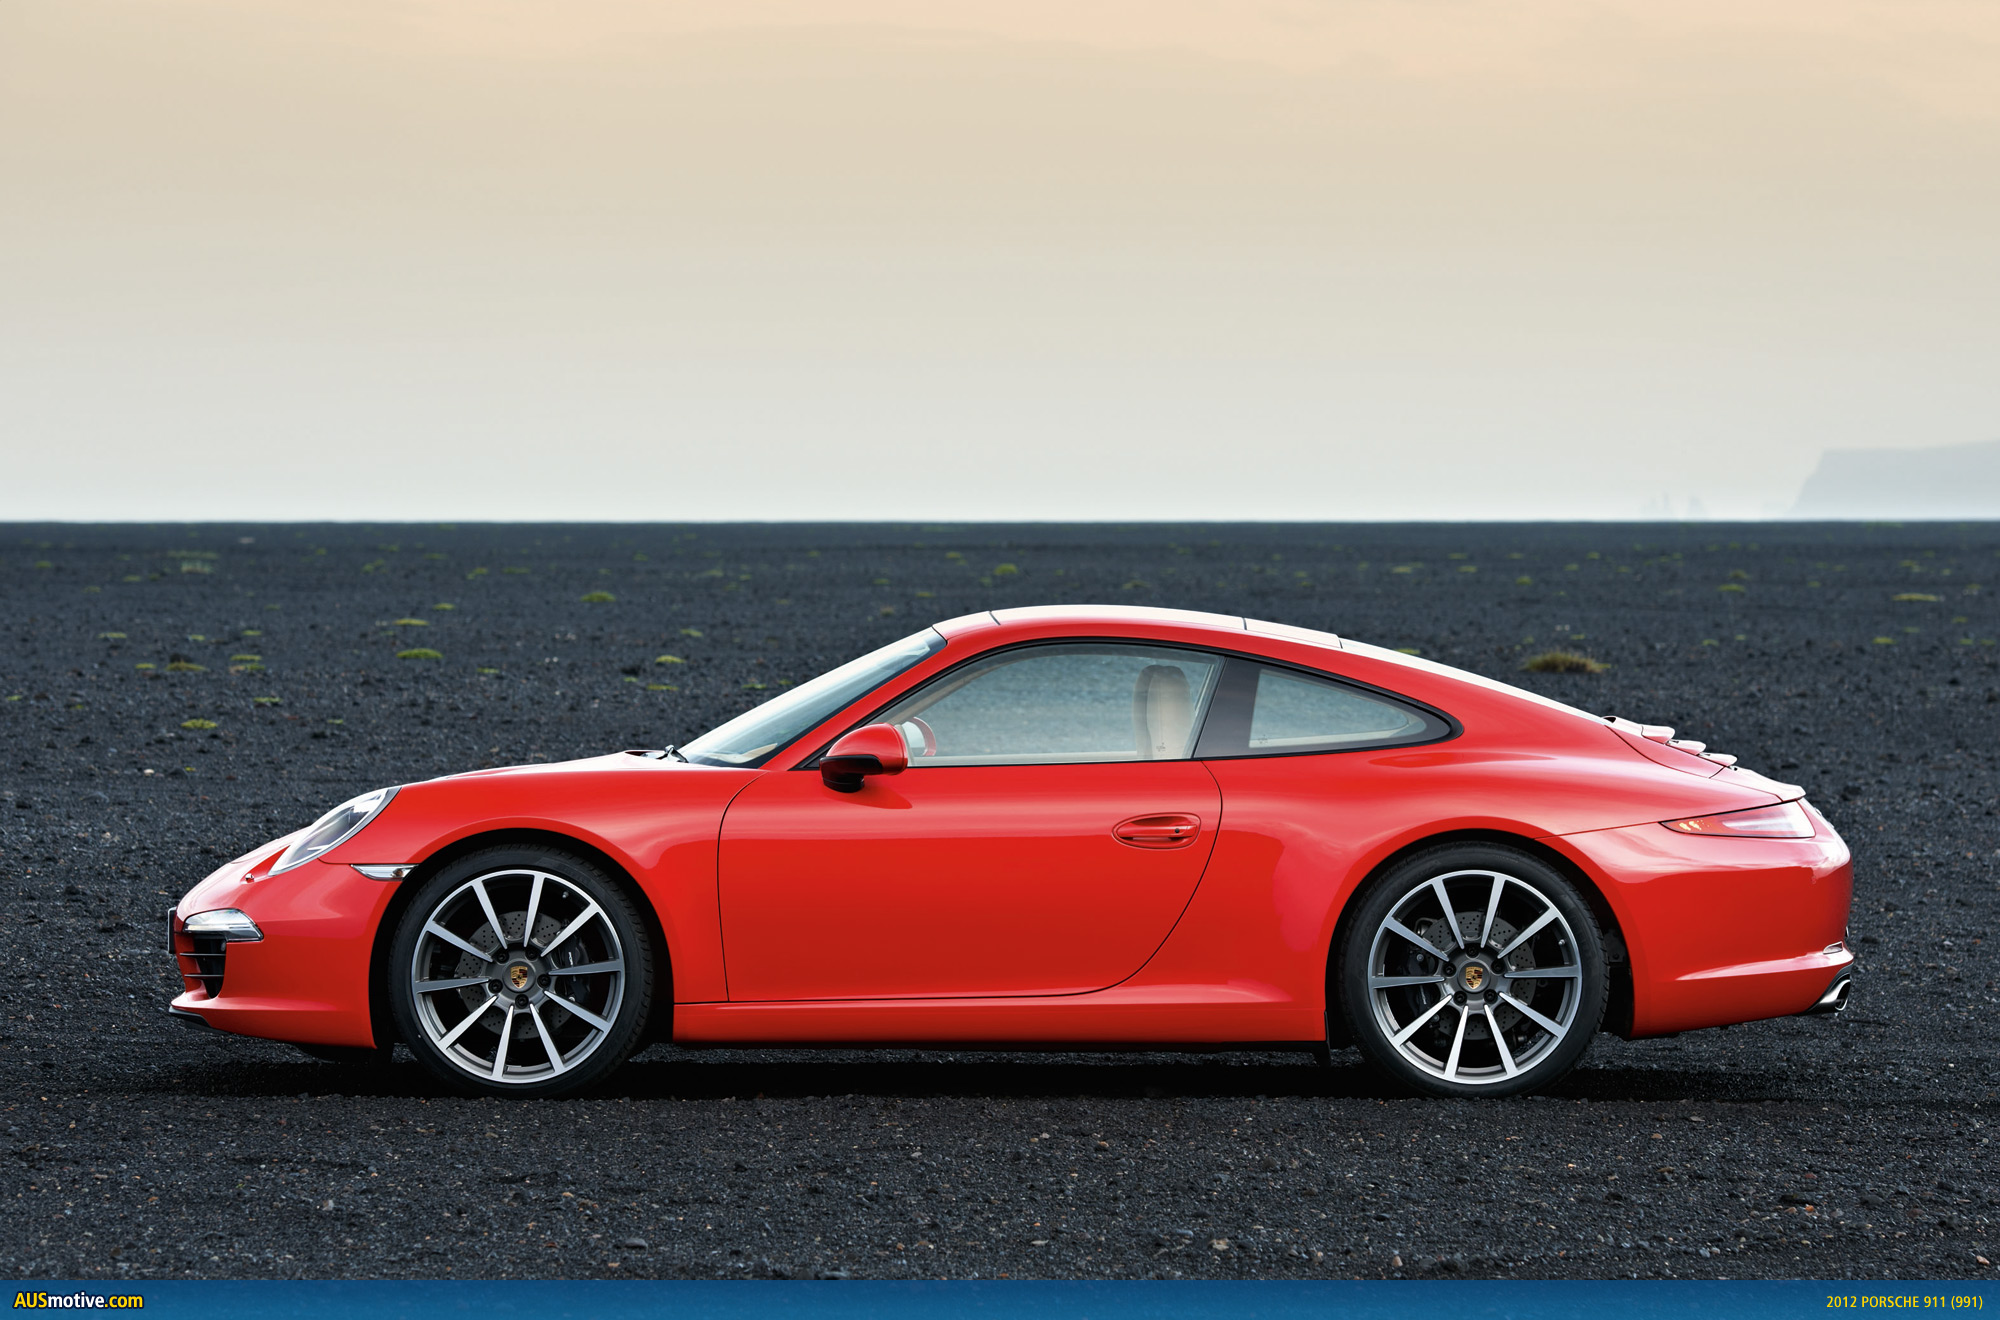 AUSmotive.com » Porsche 911: 991 Compared To 997 In Pictures